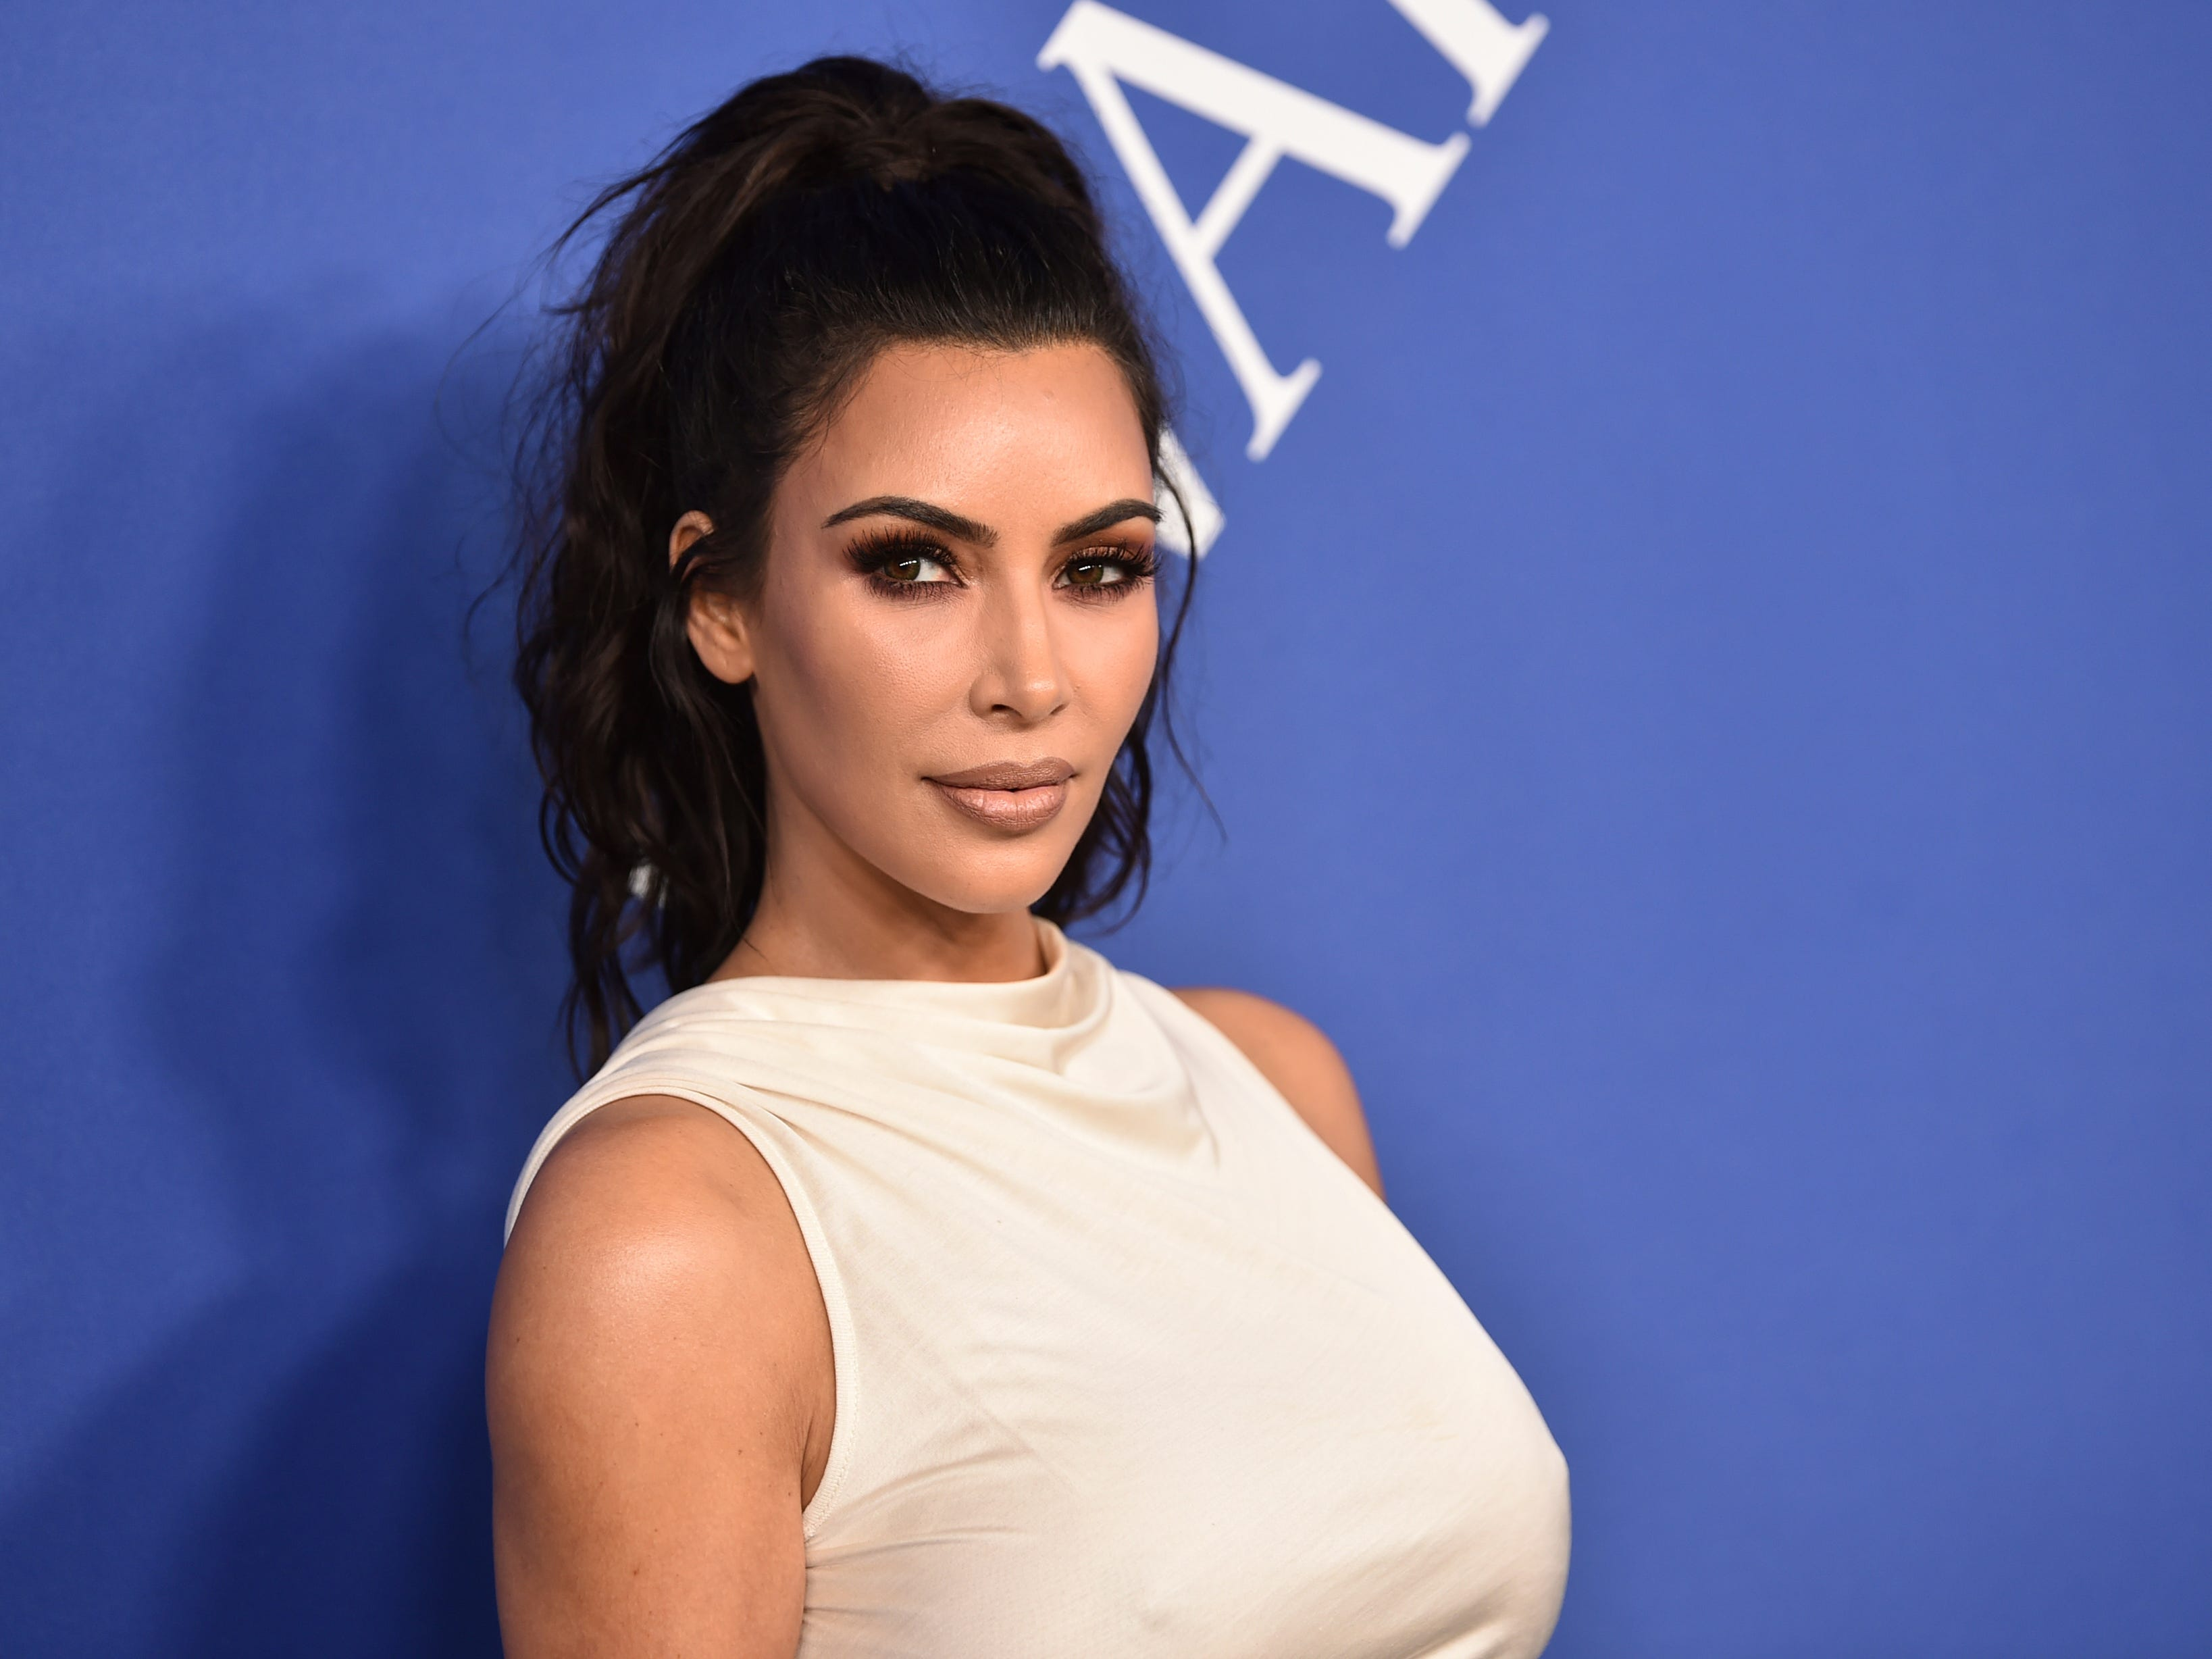 Kim Kardashian West arrives at the CFDA Fashion Awards at the Brooklyn Museum on Monday, June 4, 2018, in New York. (Photo by Evan Agostini/Invision/AP) ORG XMIT: NYPM173